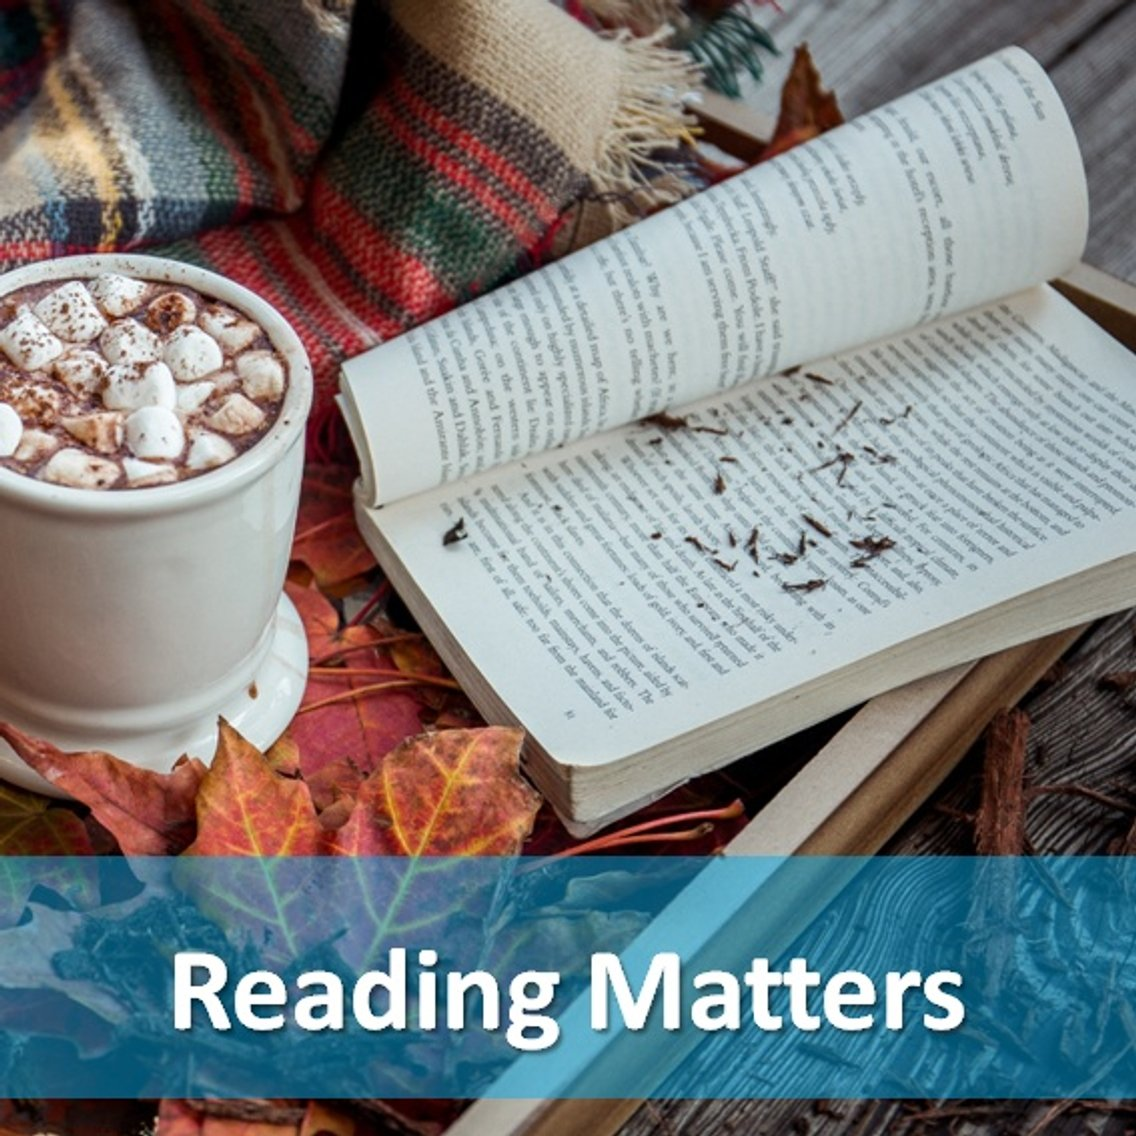 Reading Matters - Cover Image